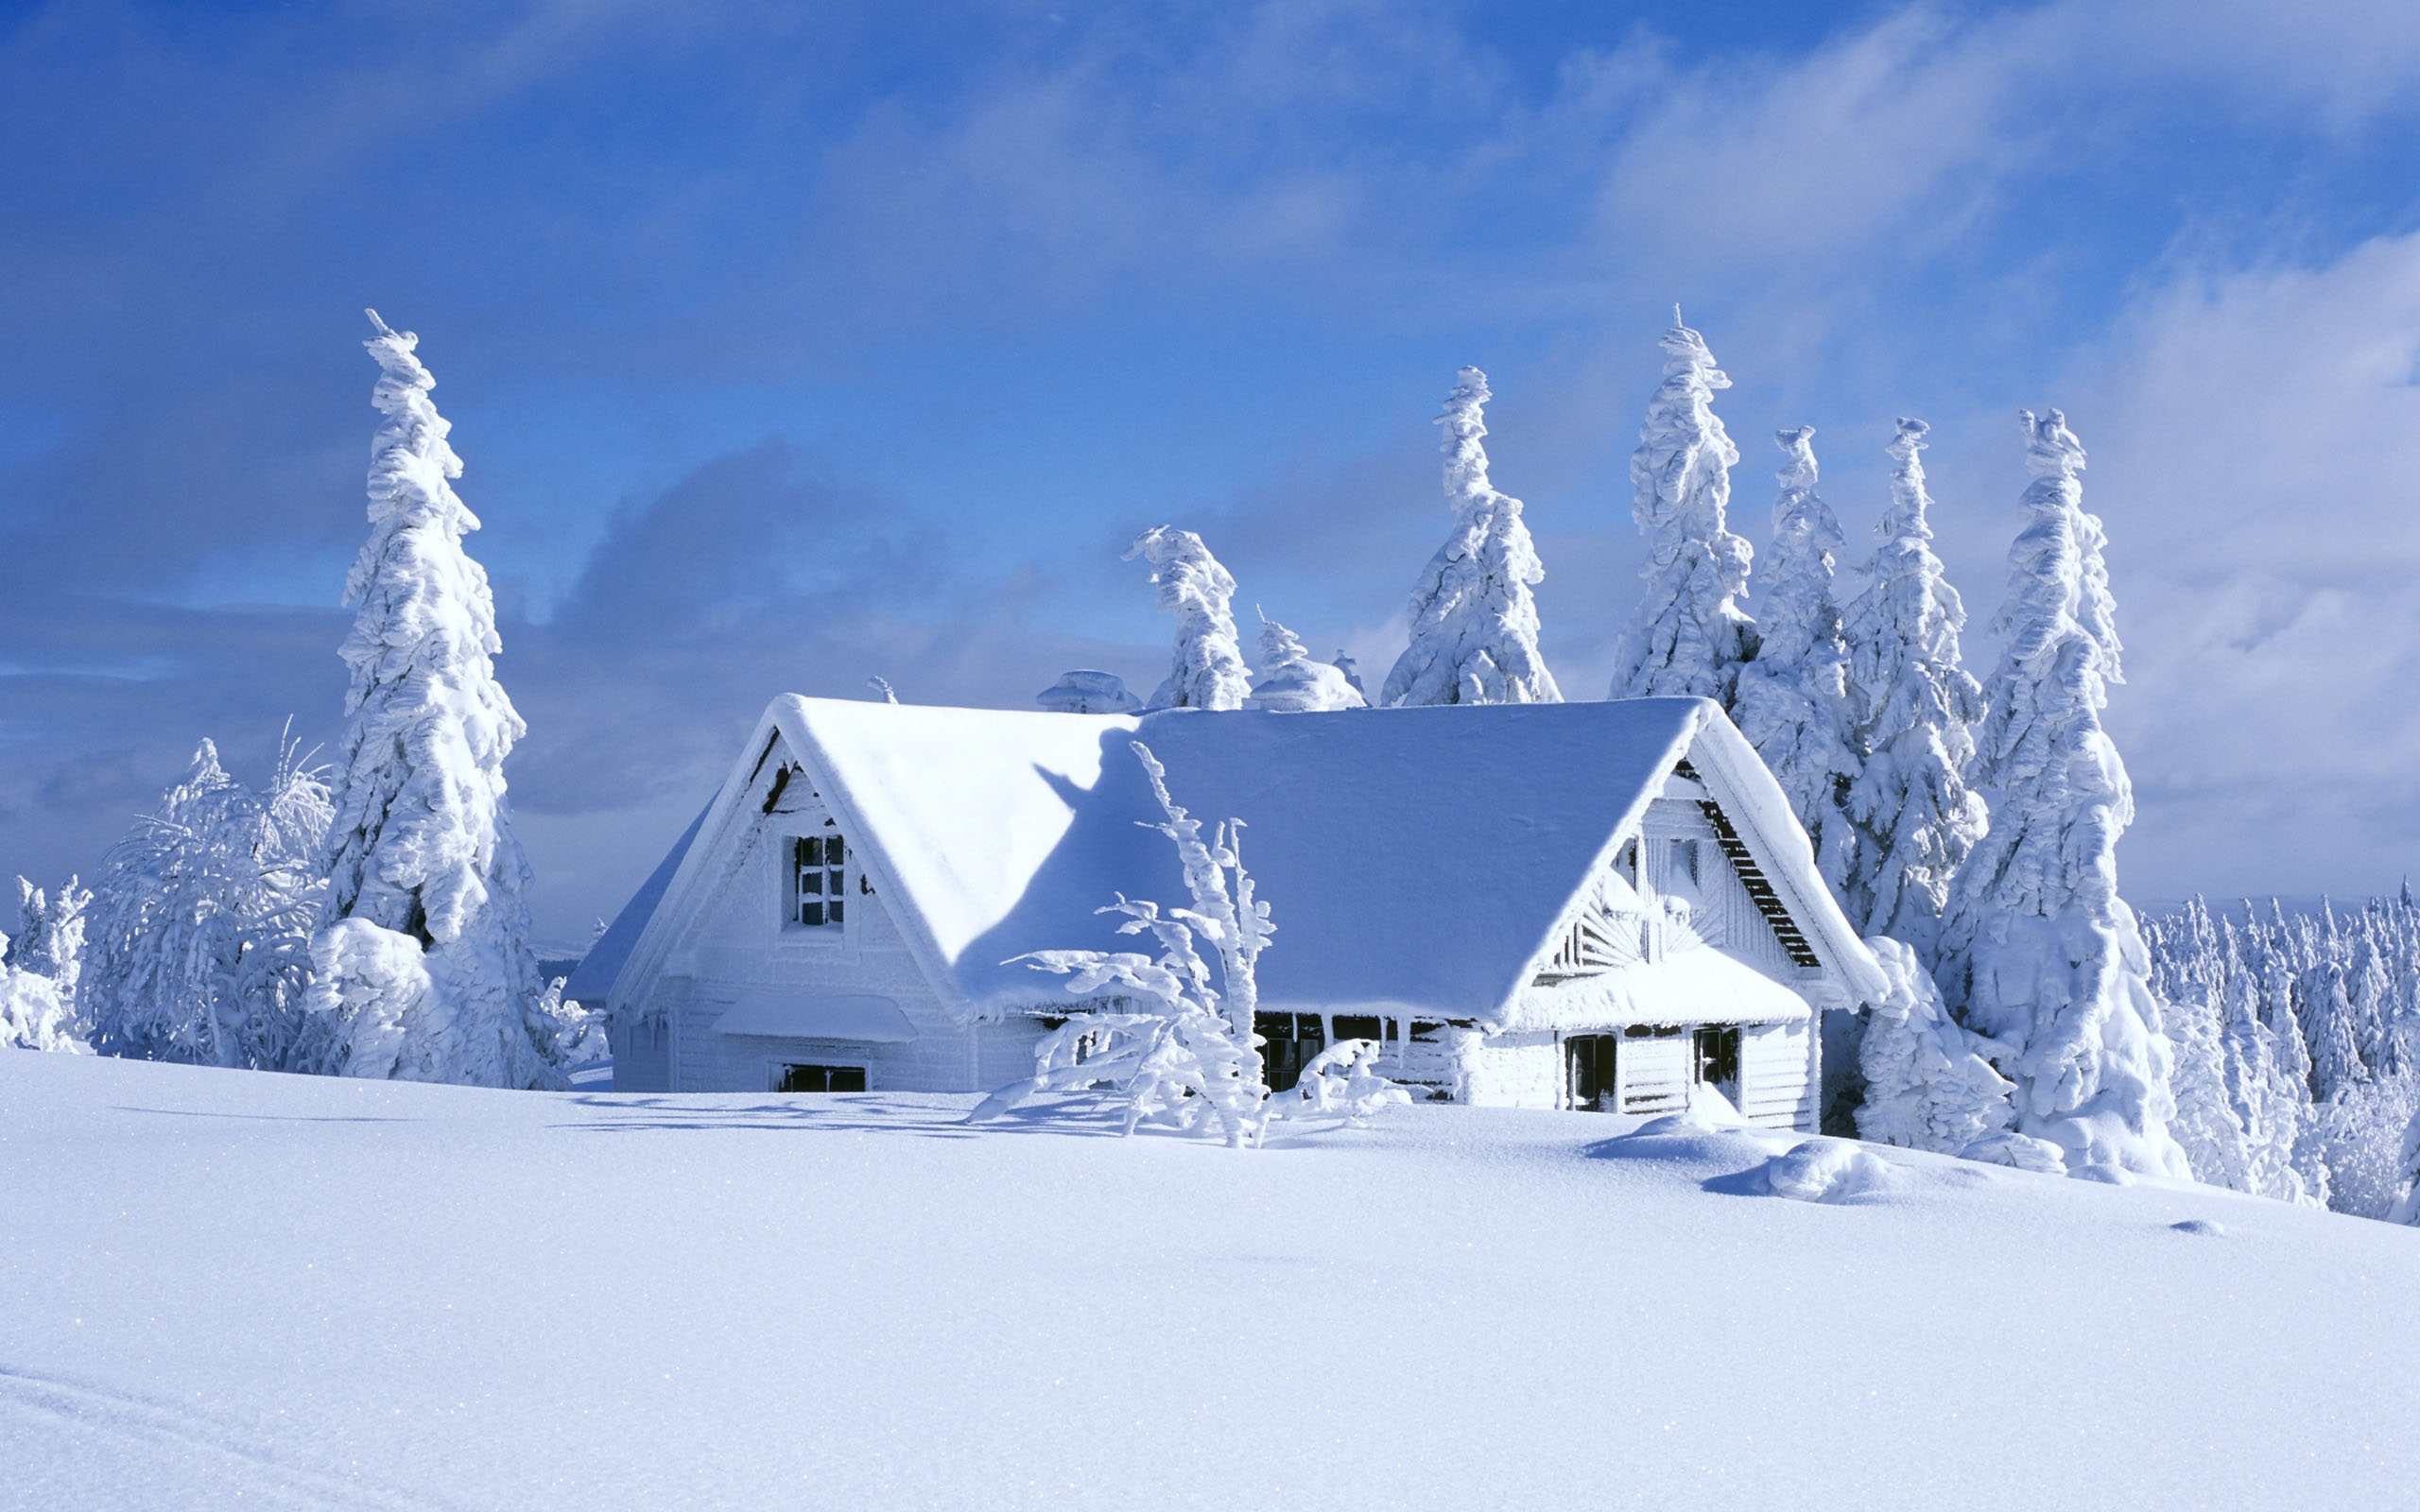 35 Beautiful HD Winter Wallpapers 2560x1600